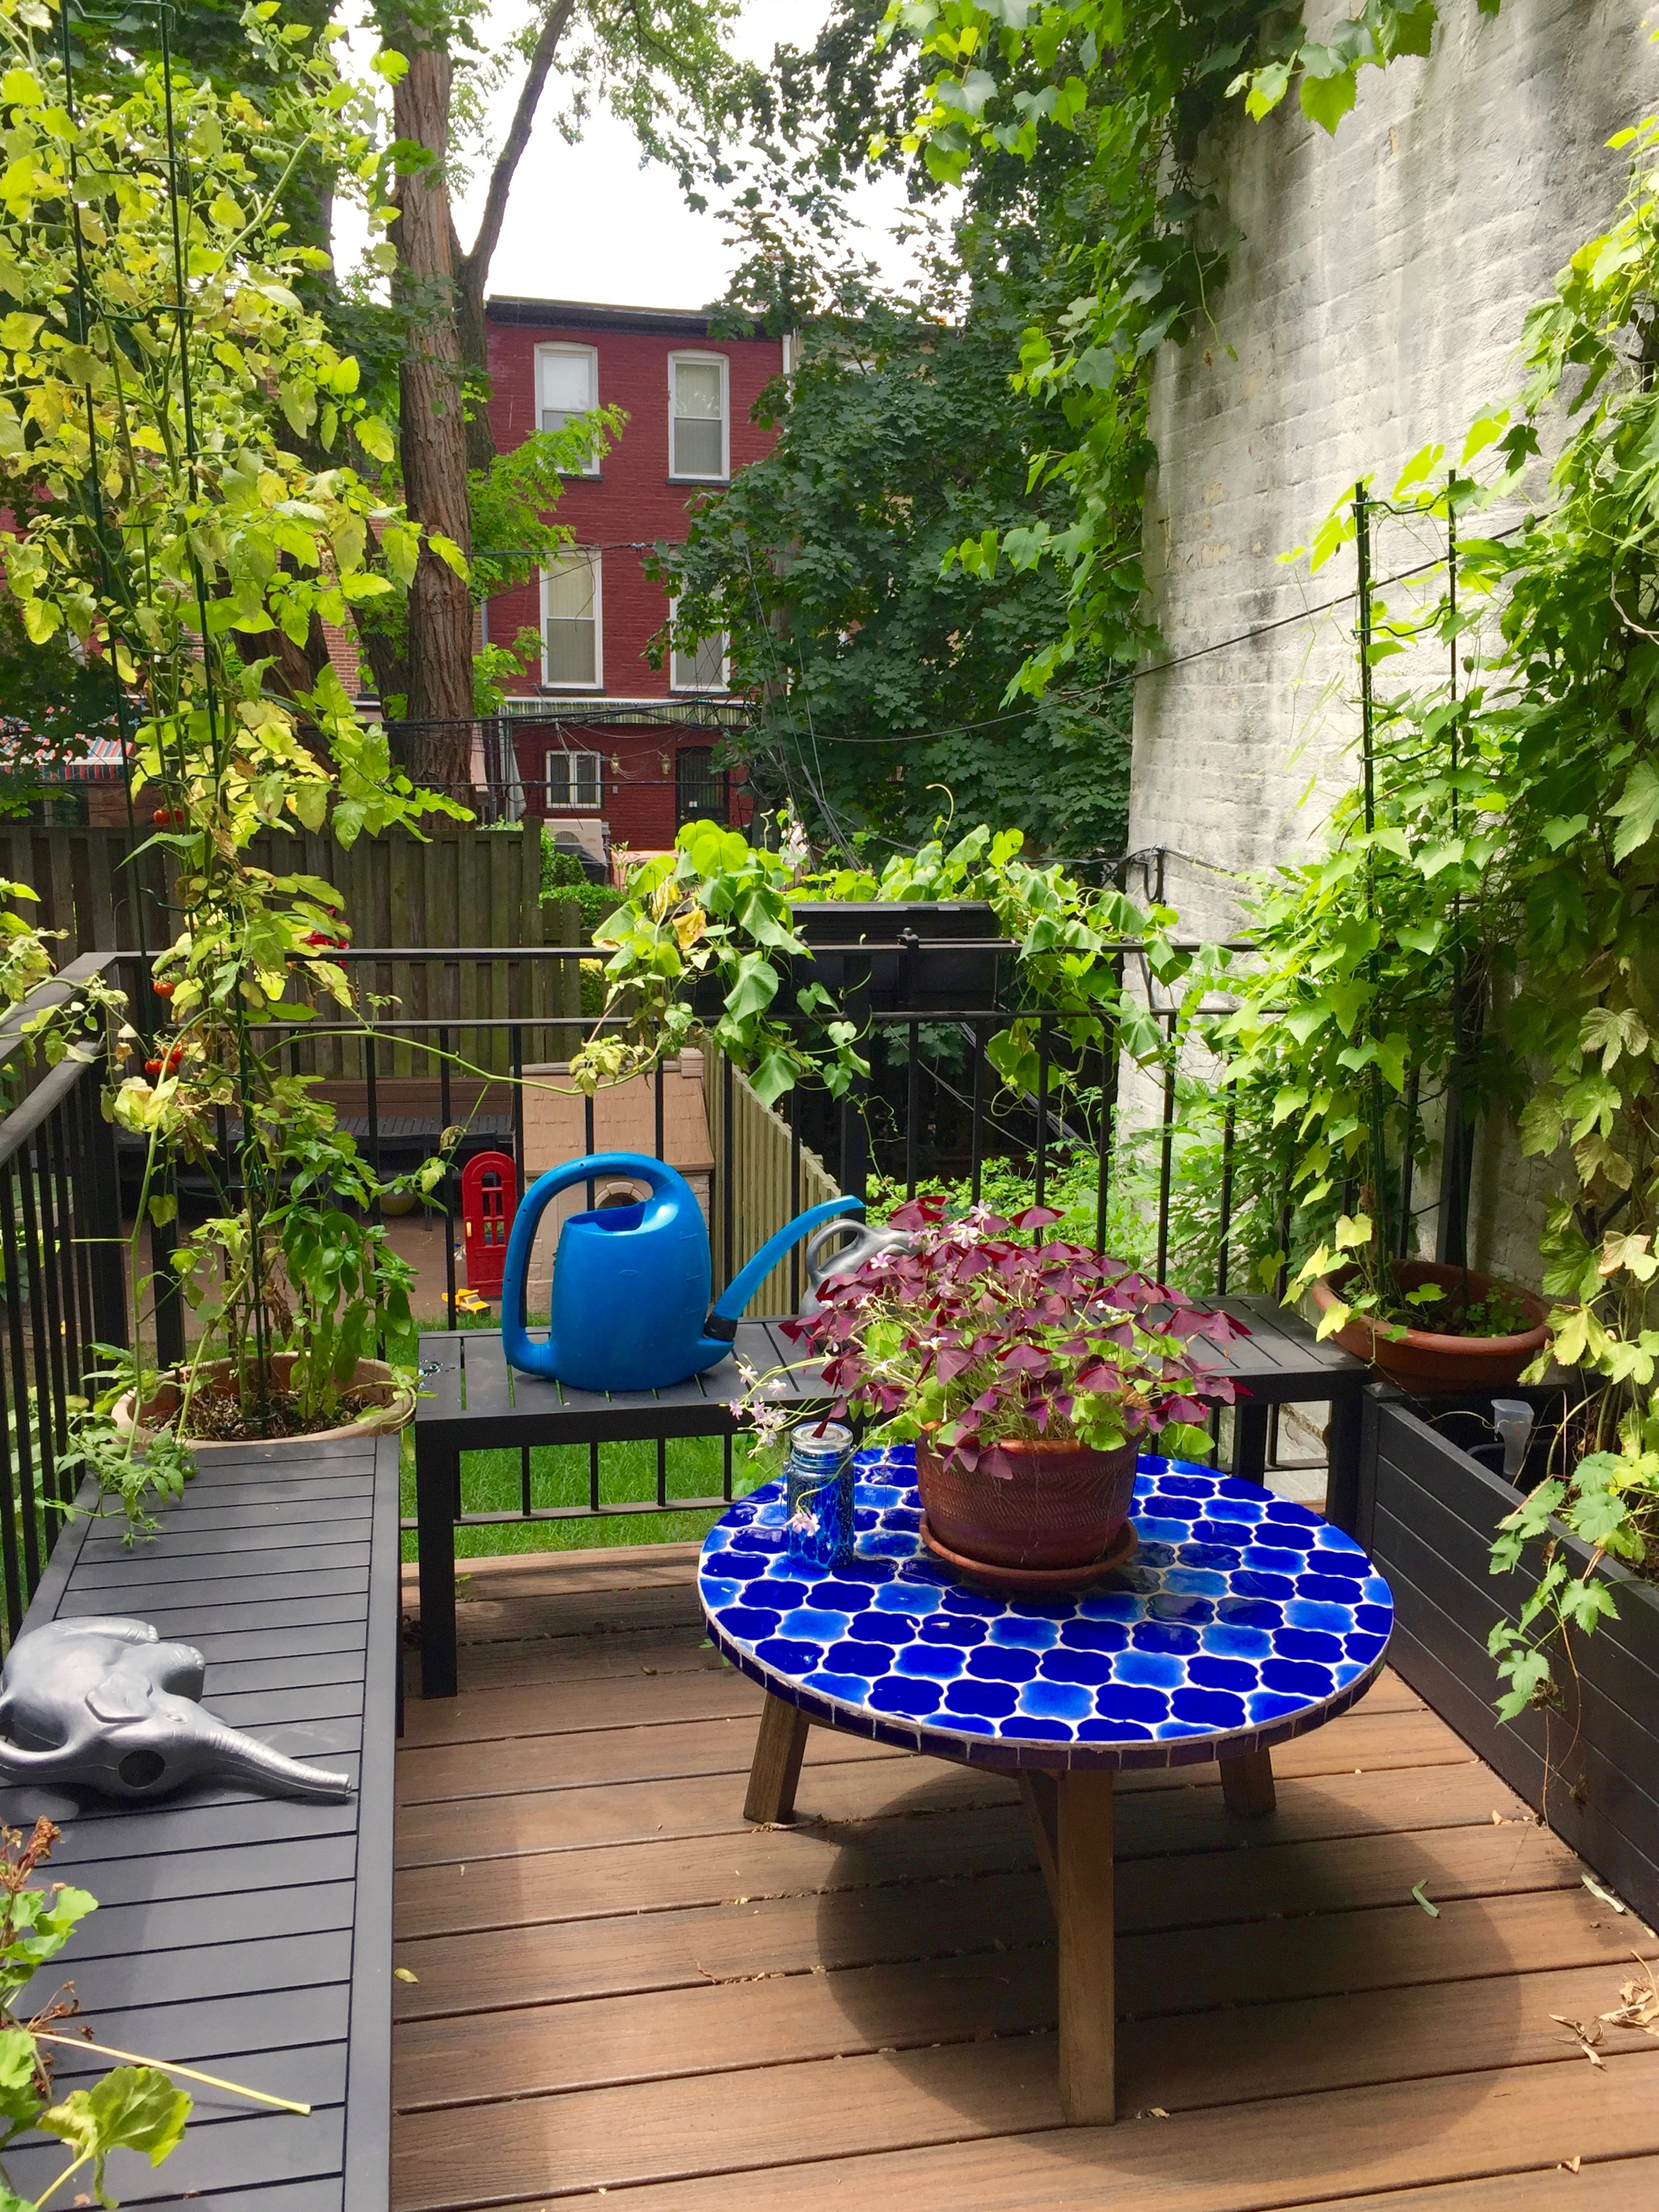 Patio garden with stacking tomato ladders from Gardener's Supply.